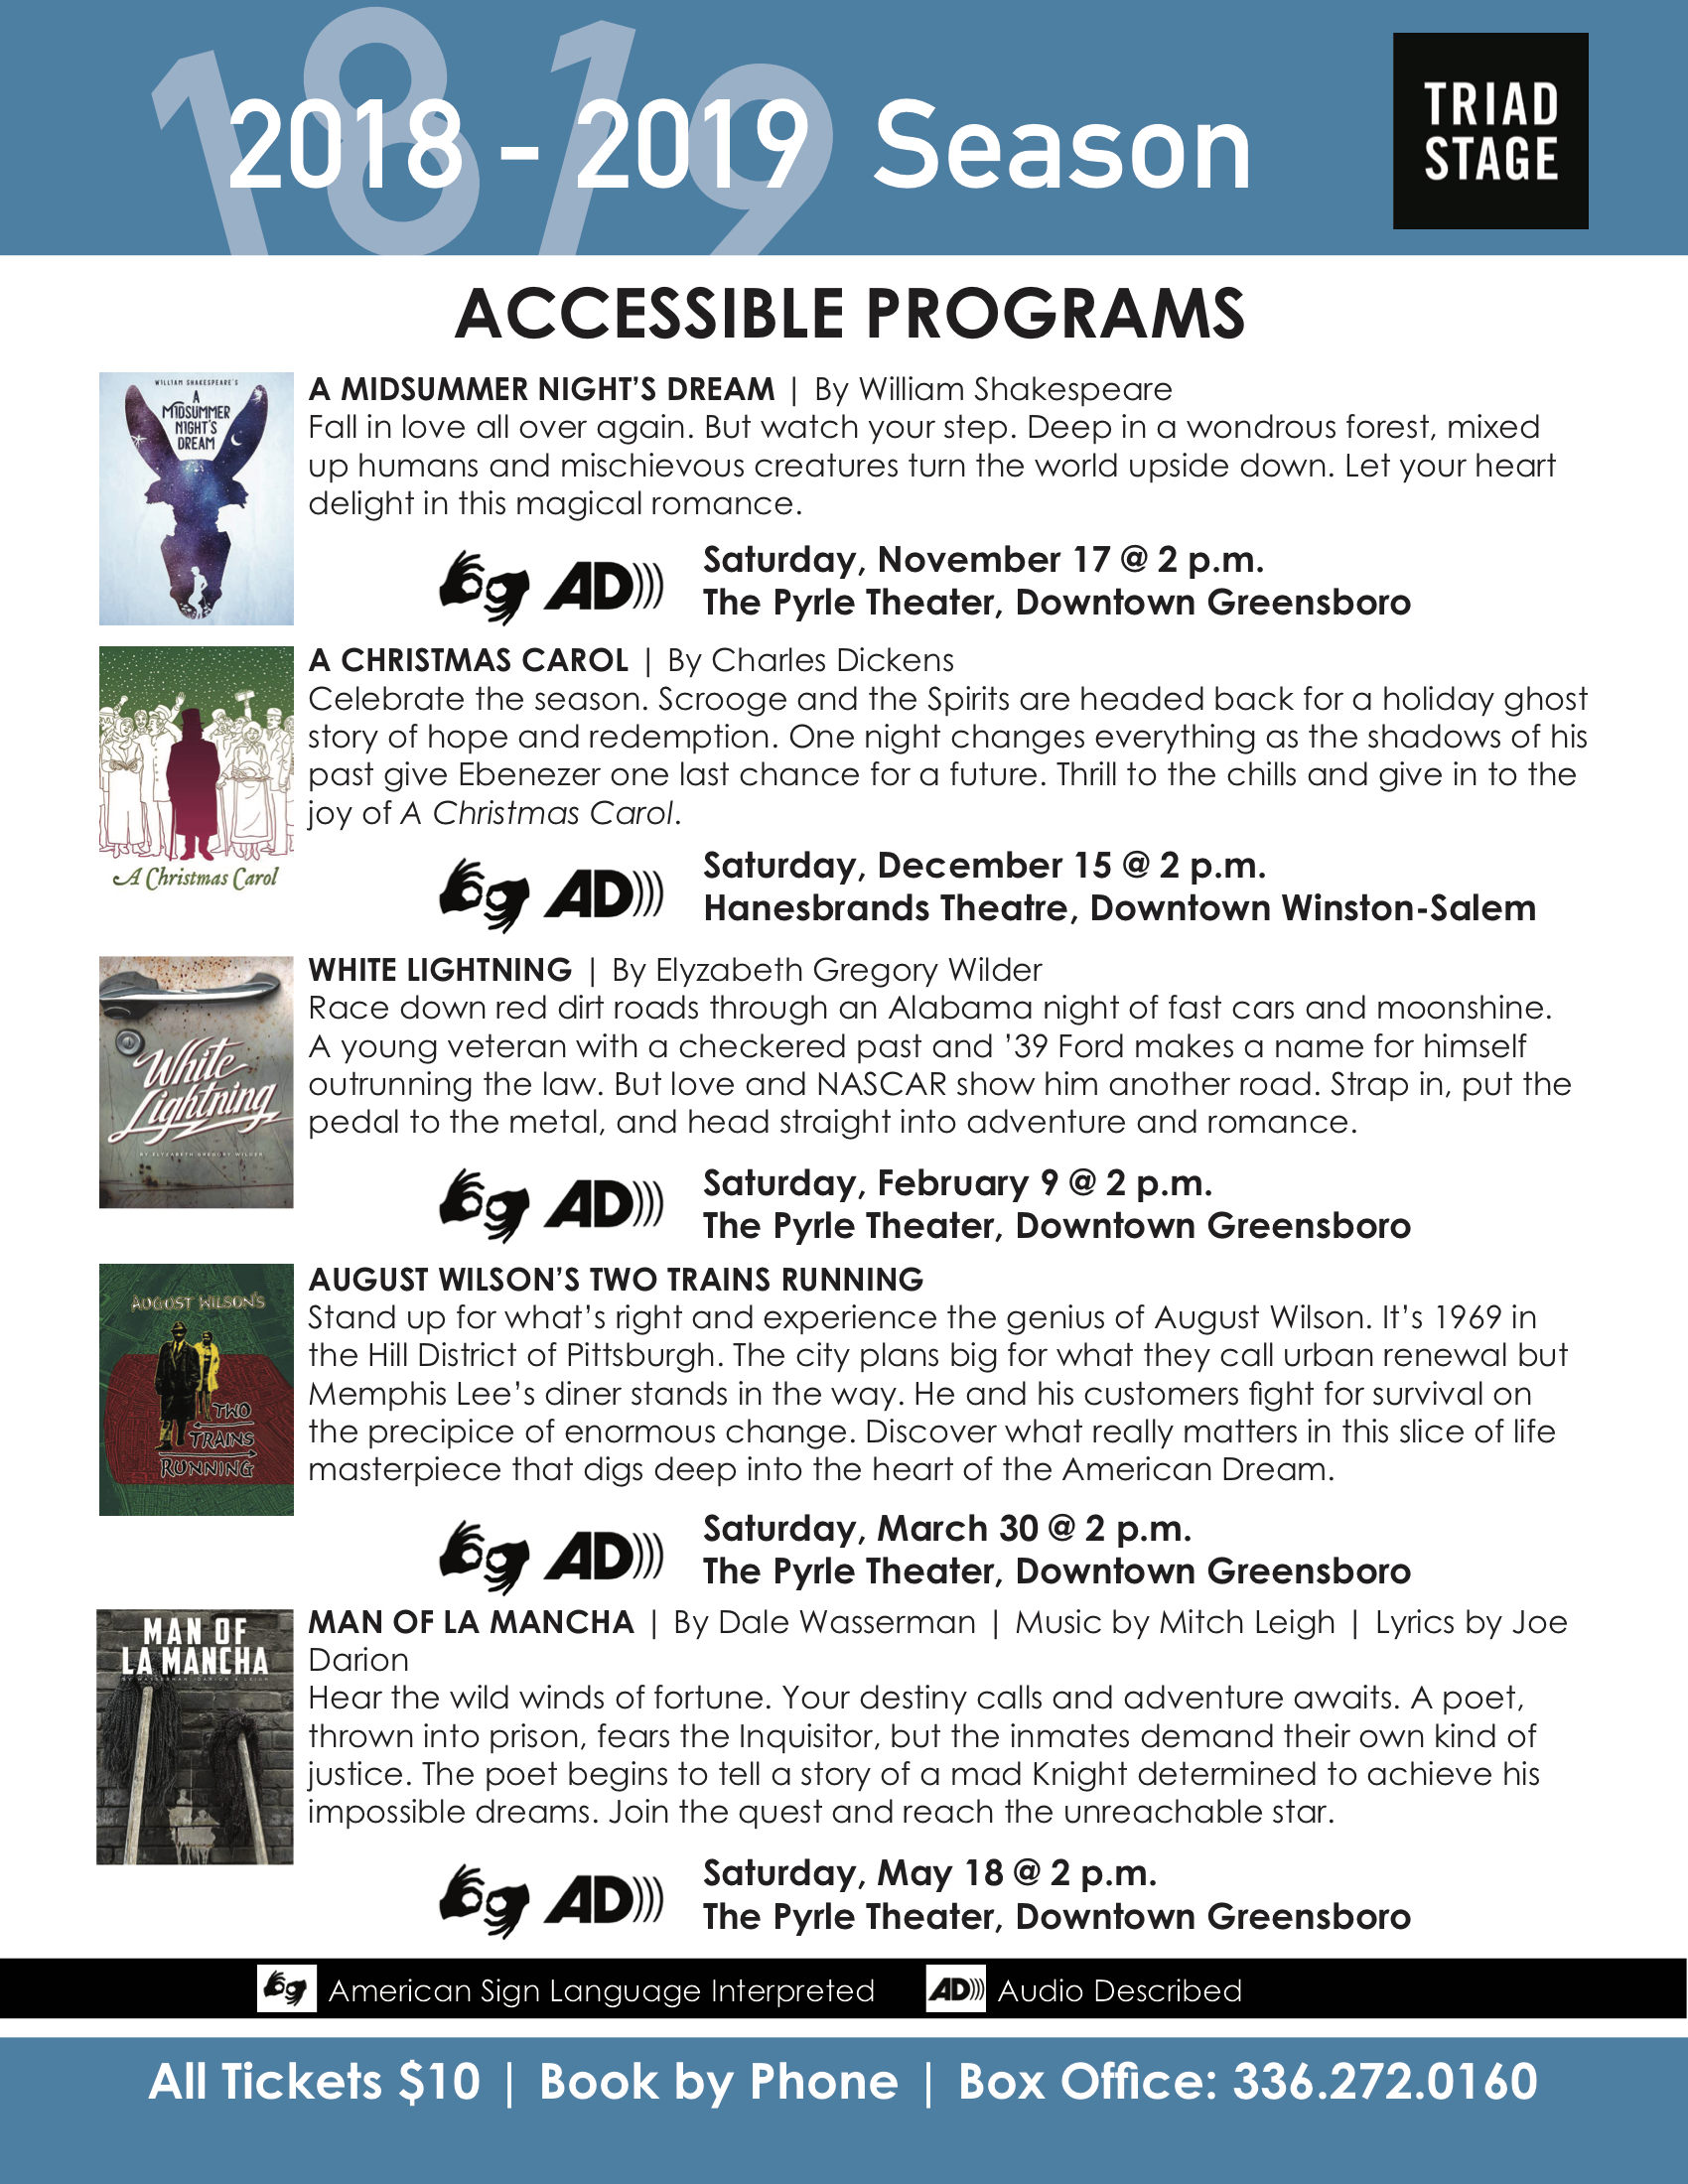 Triad Stage Accessible Programs.jpg